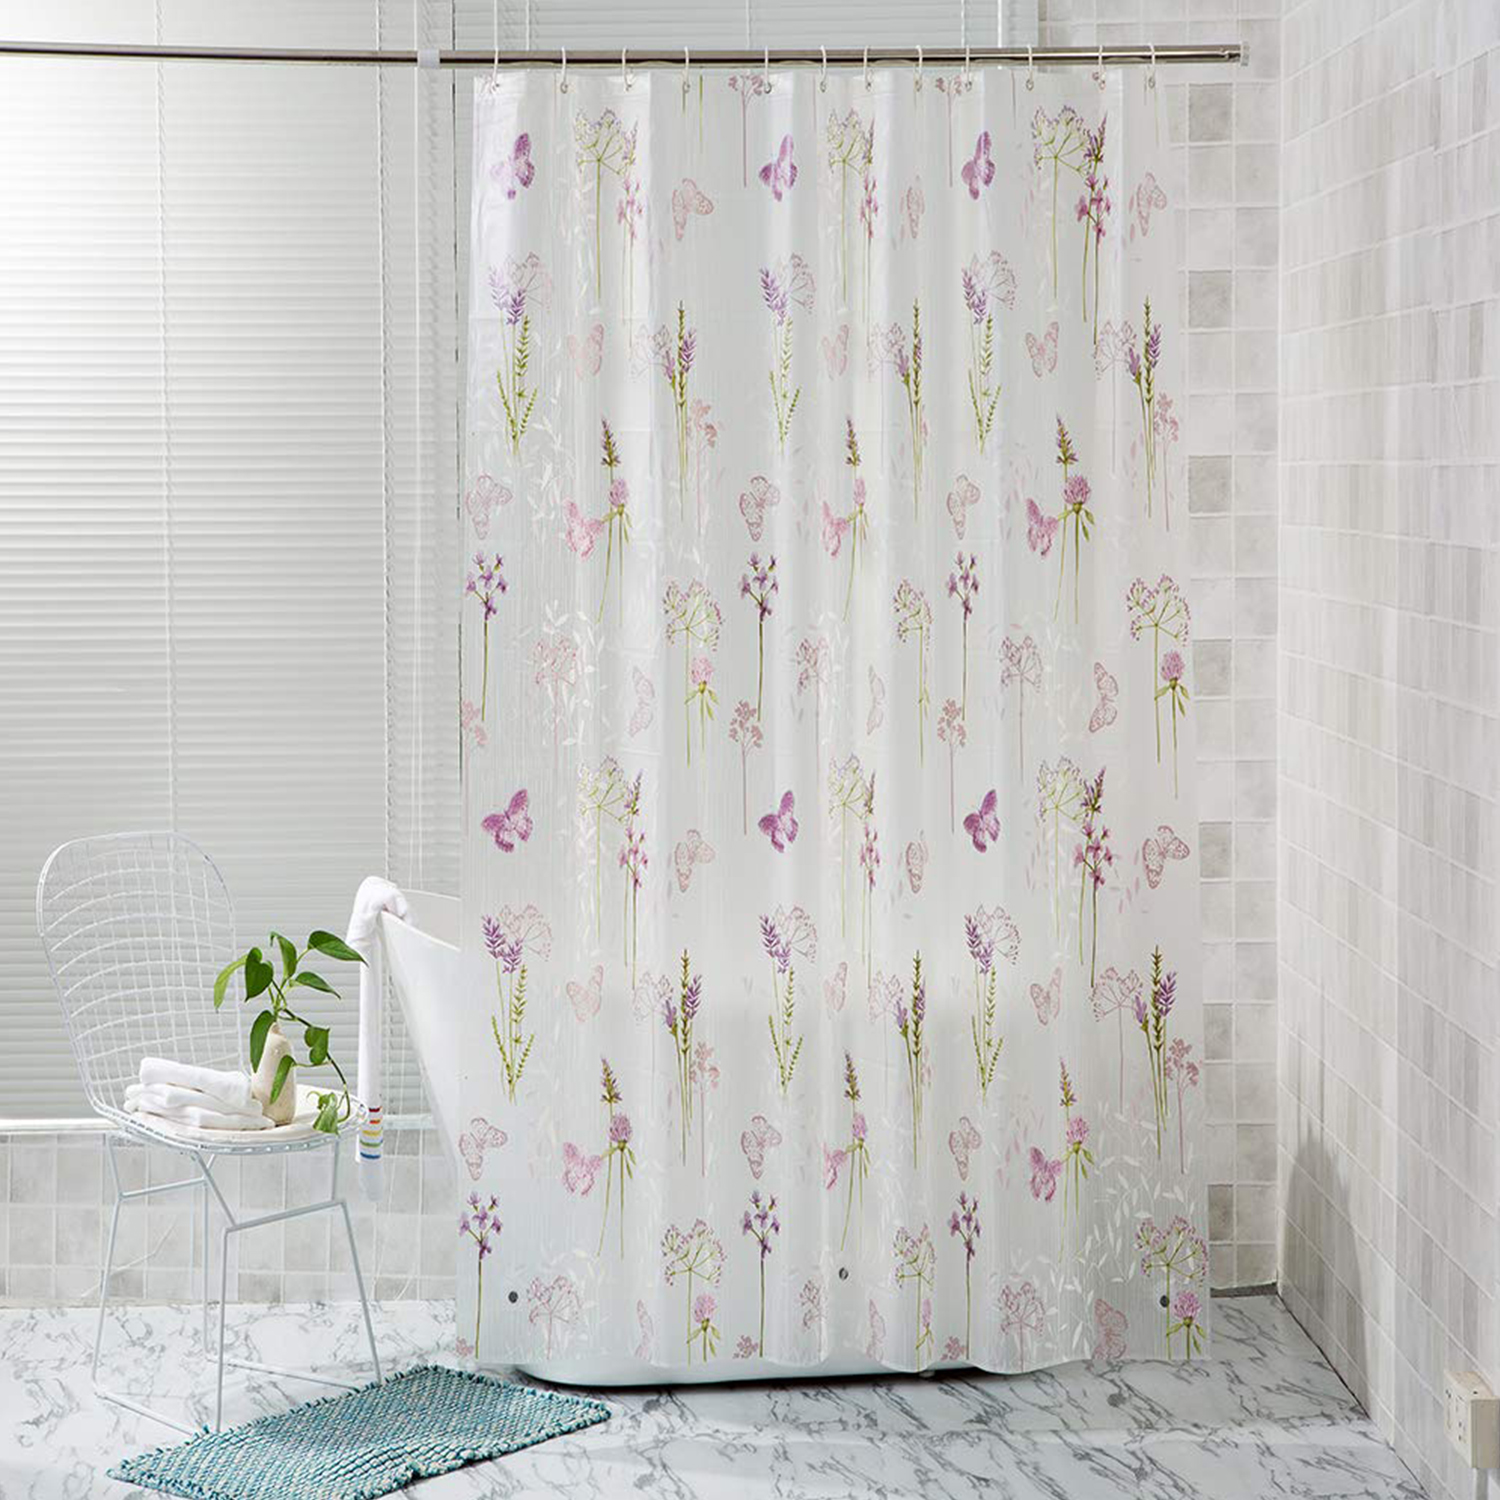 Details About Shower Curtain 72 X72 Butterfly Flowers Peva Bathroom Shower Curtain With Hooks